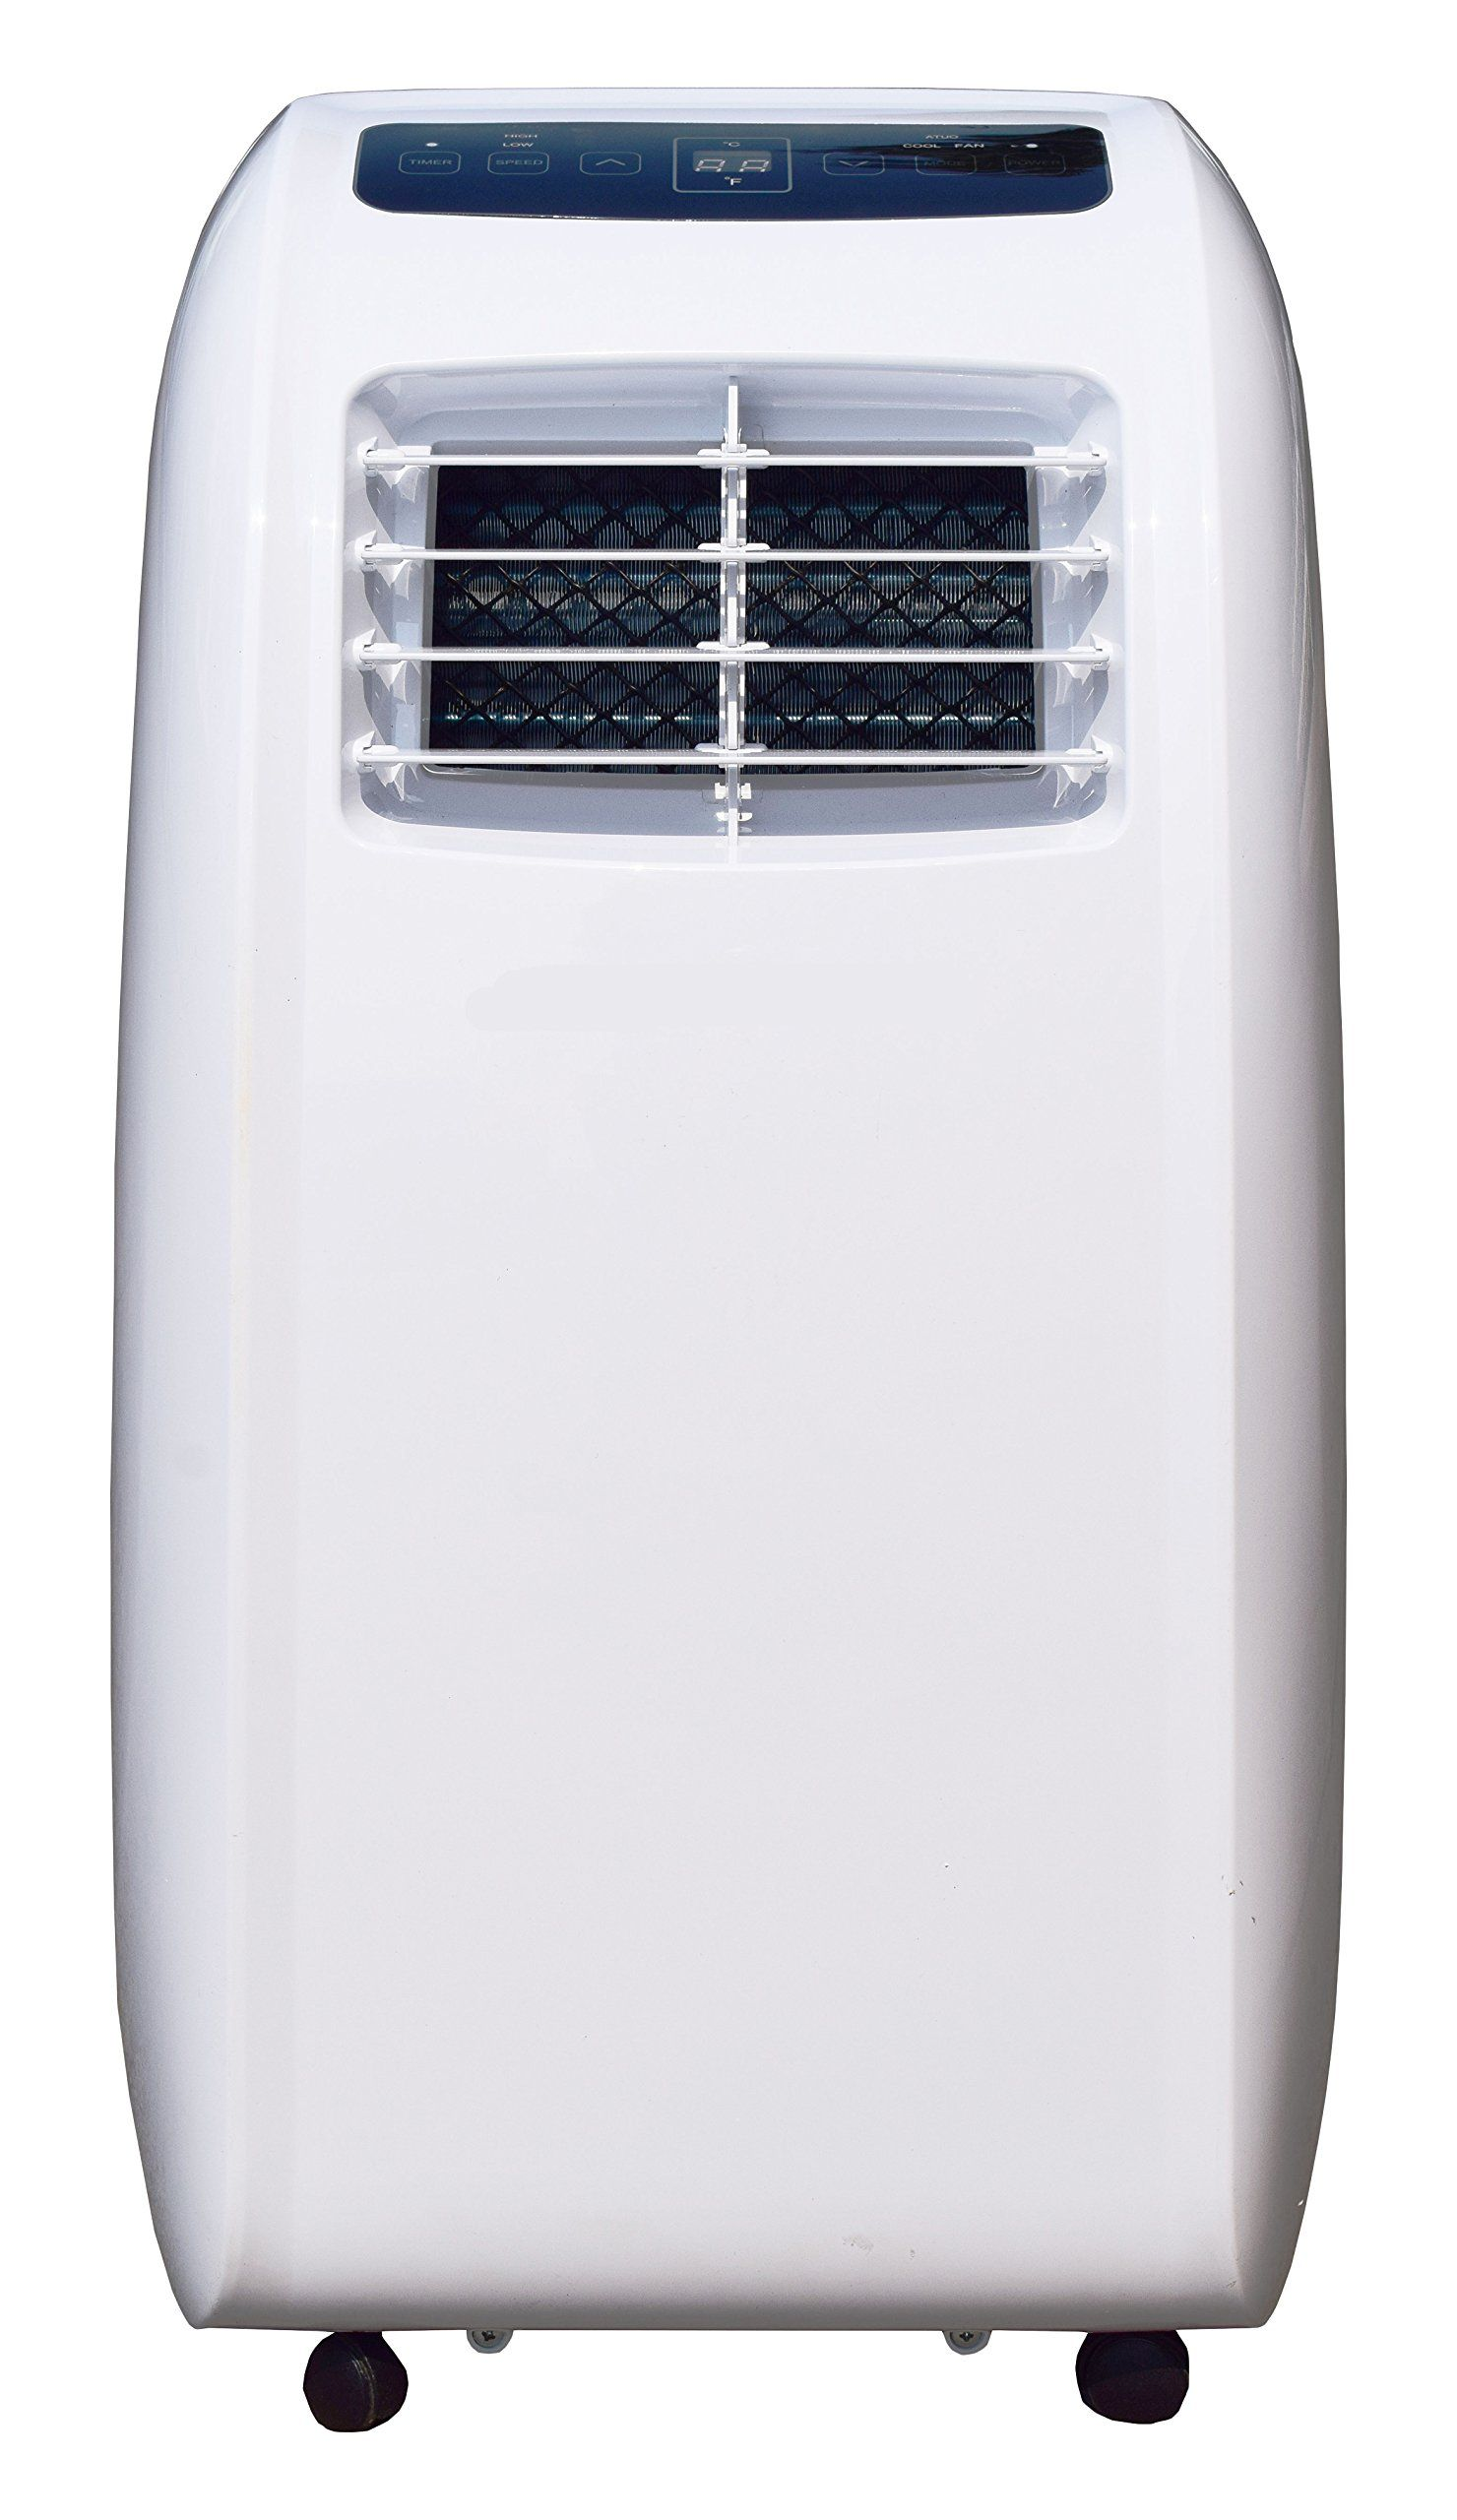 Cch Ypla08c Portable Air Conditioner Gt Gt Gt Click On The